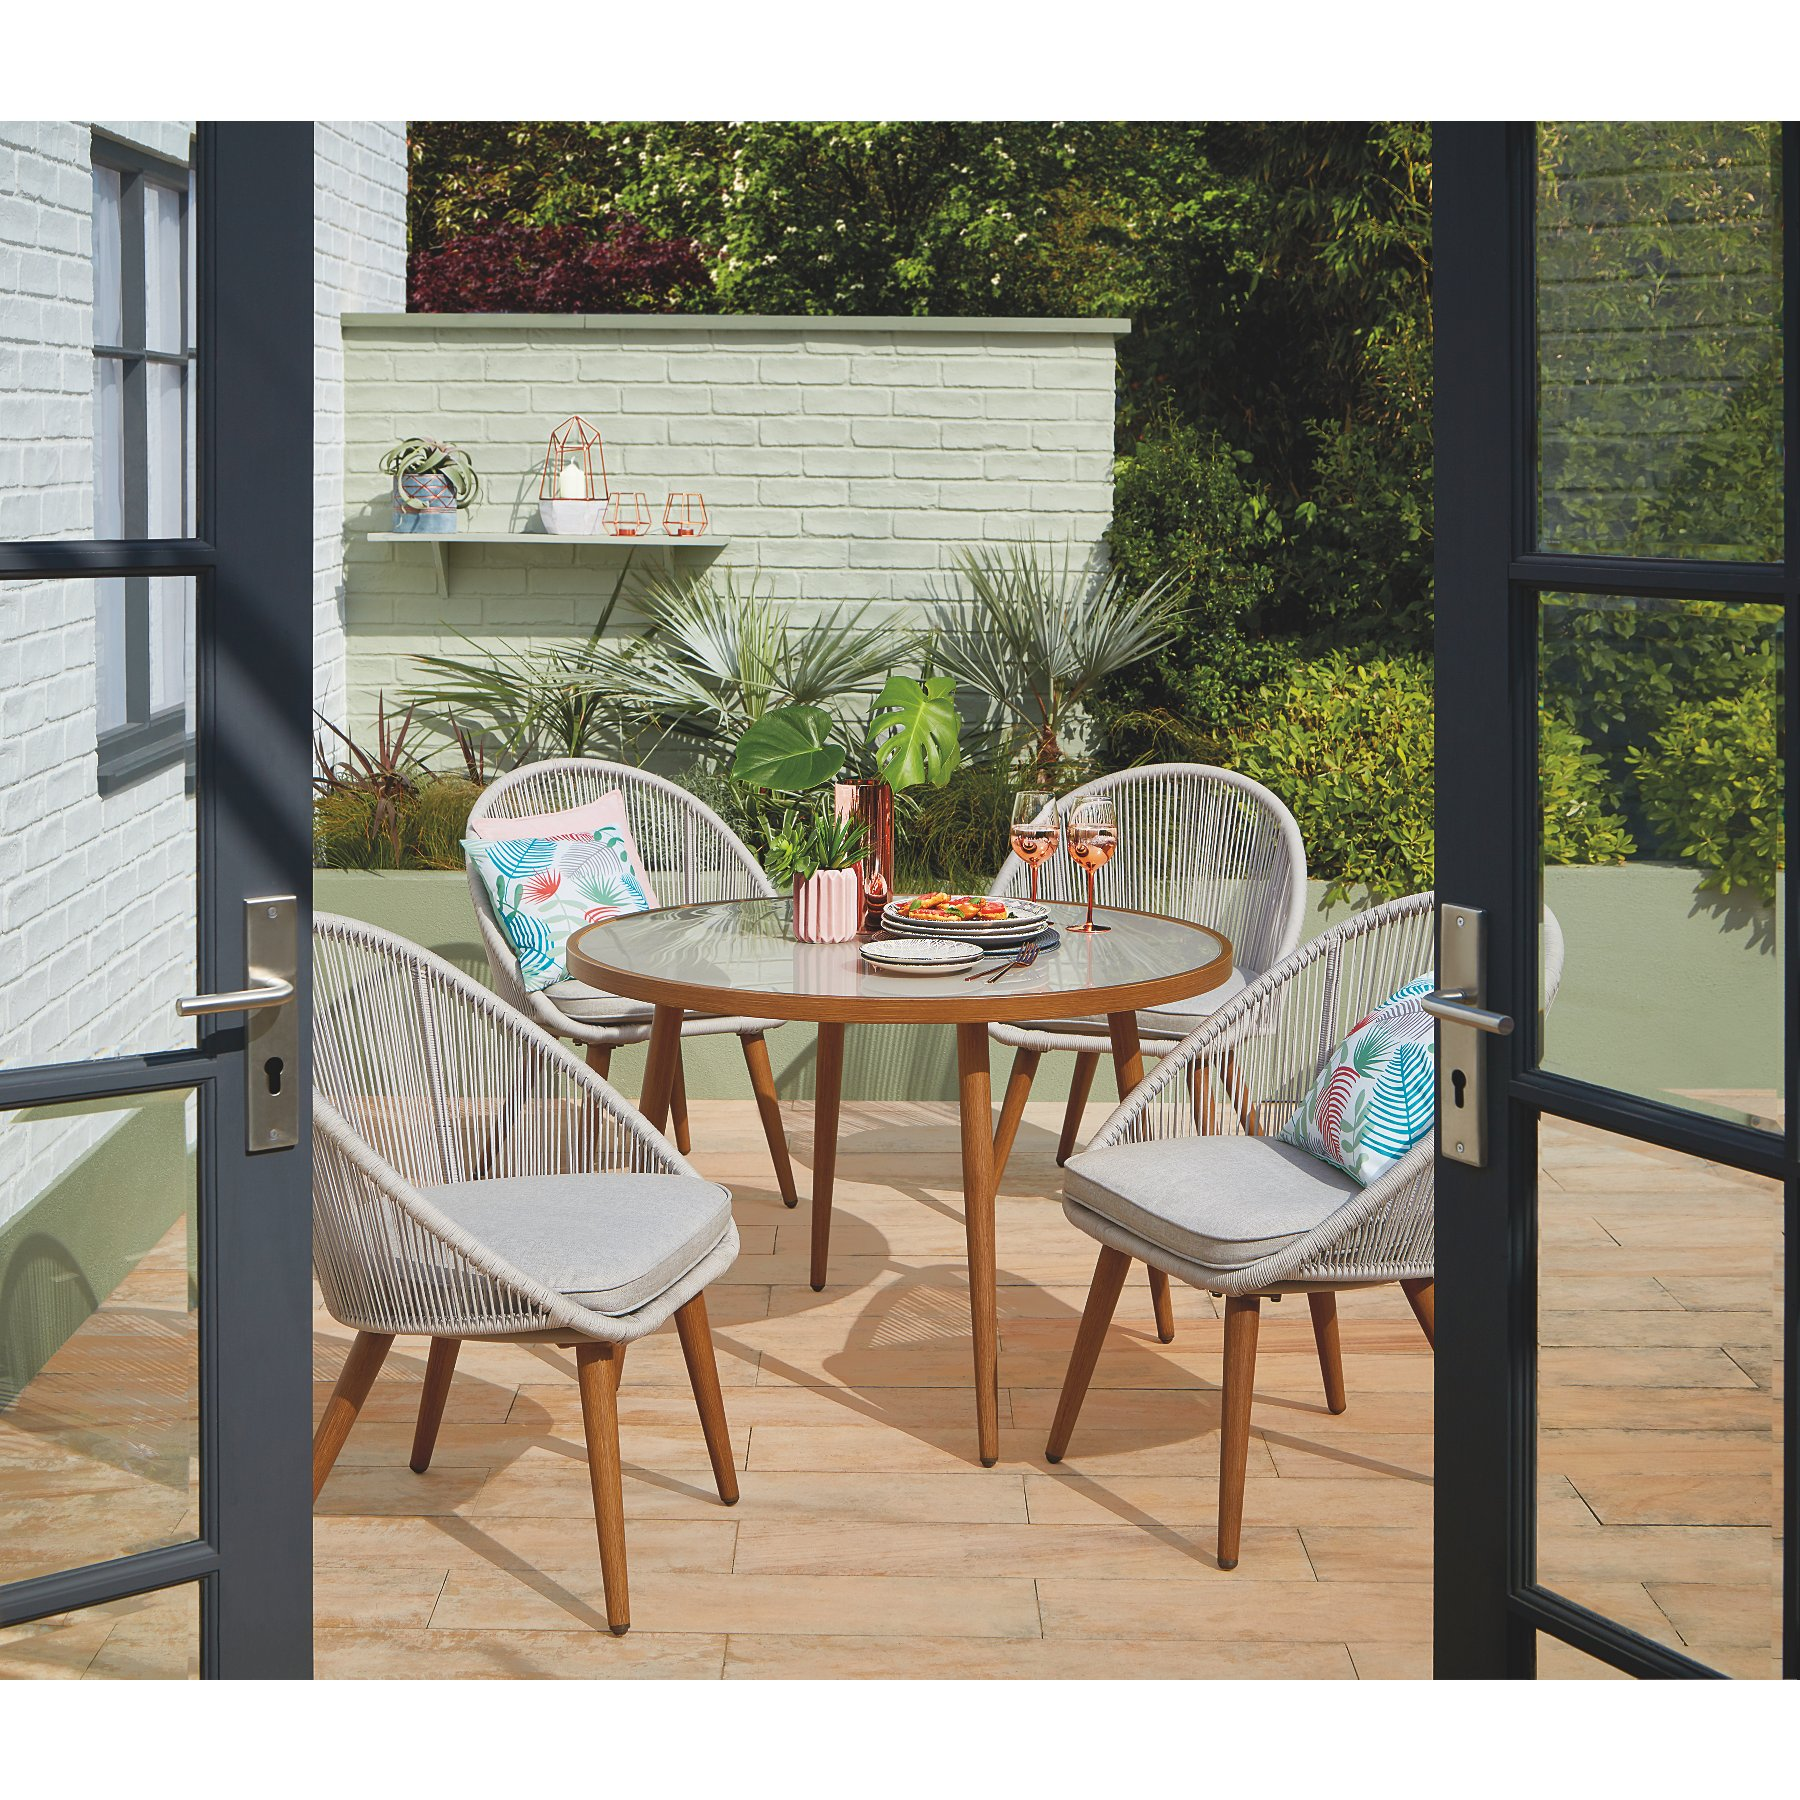 Sunbaked Nerja Outdoor Dining Range  View All Garden Furniture